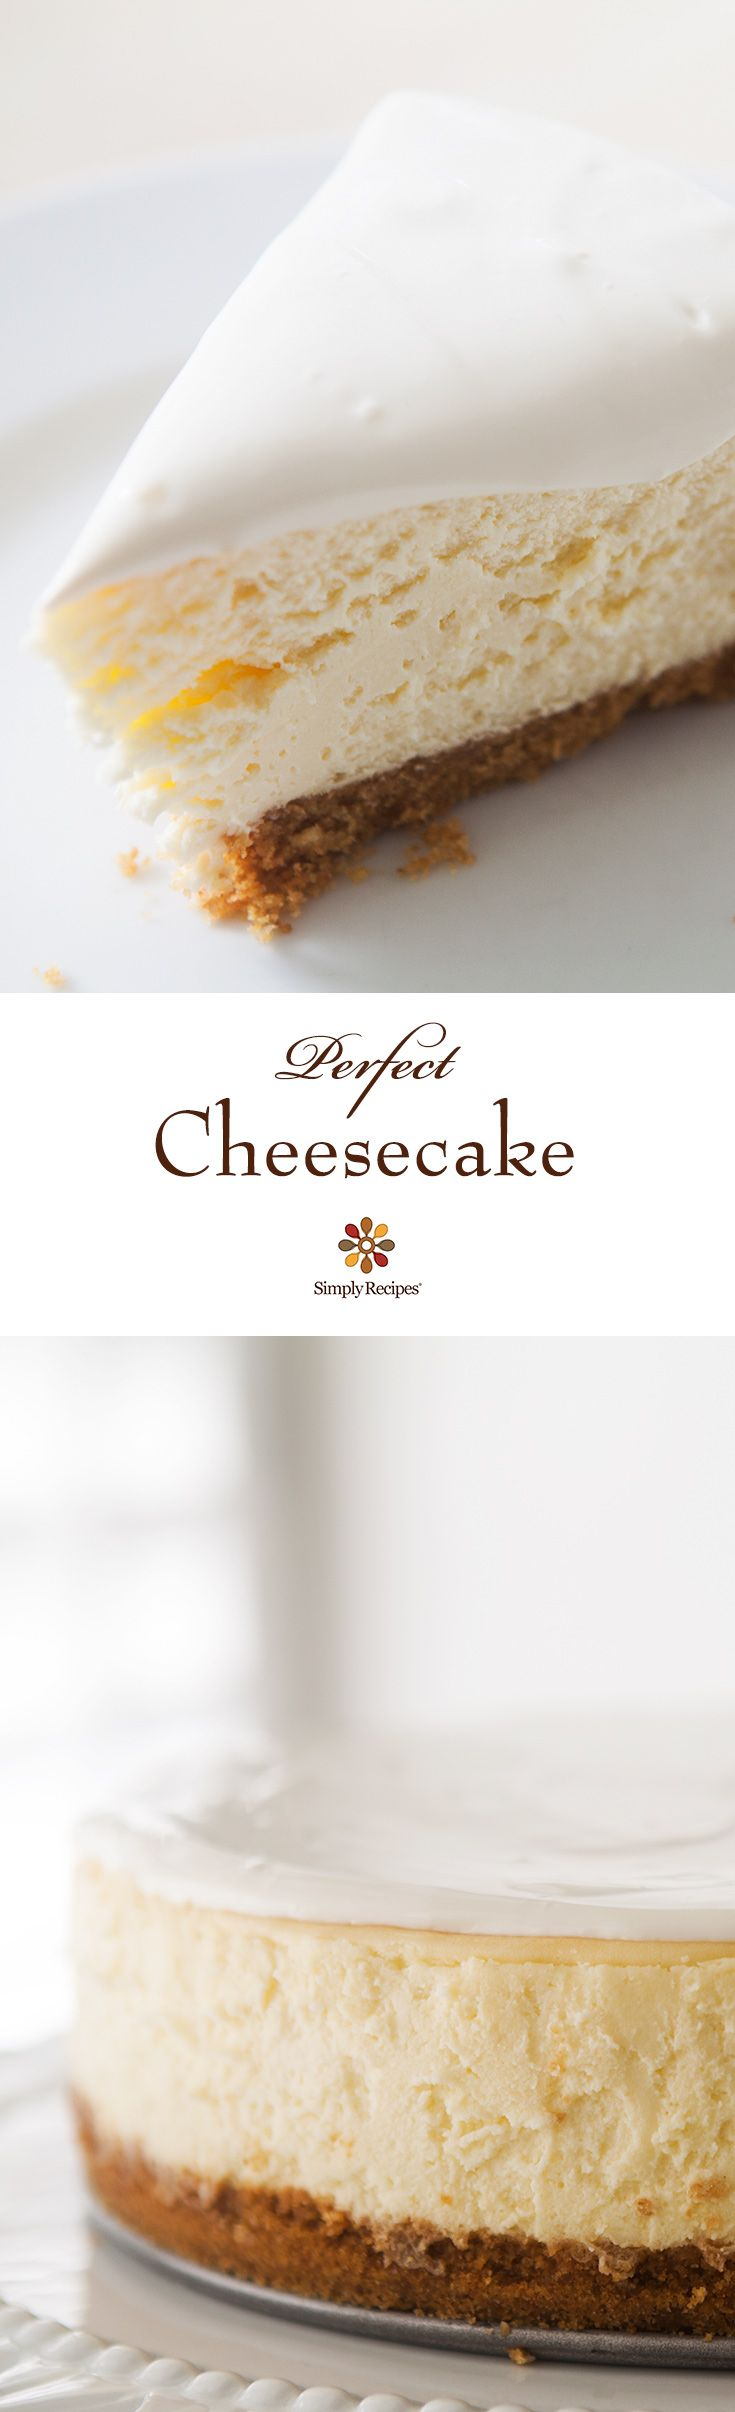 Perfect Cheesecake ~ Beautiful, classic cheesecake, tangy and sweet, with a velvety smooth and rich texture. A special treat ~ SimplyRecipes.com